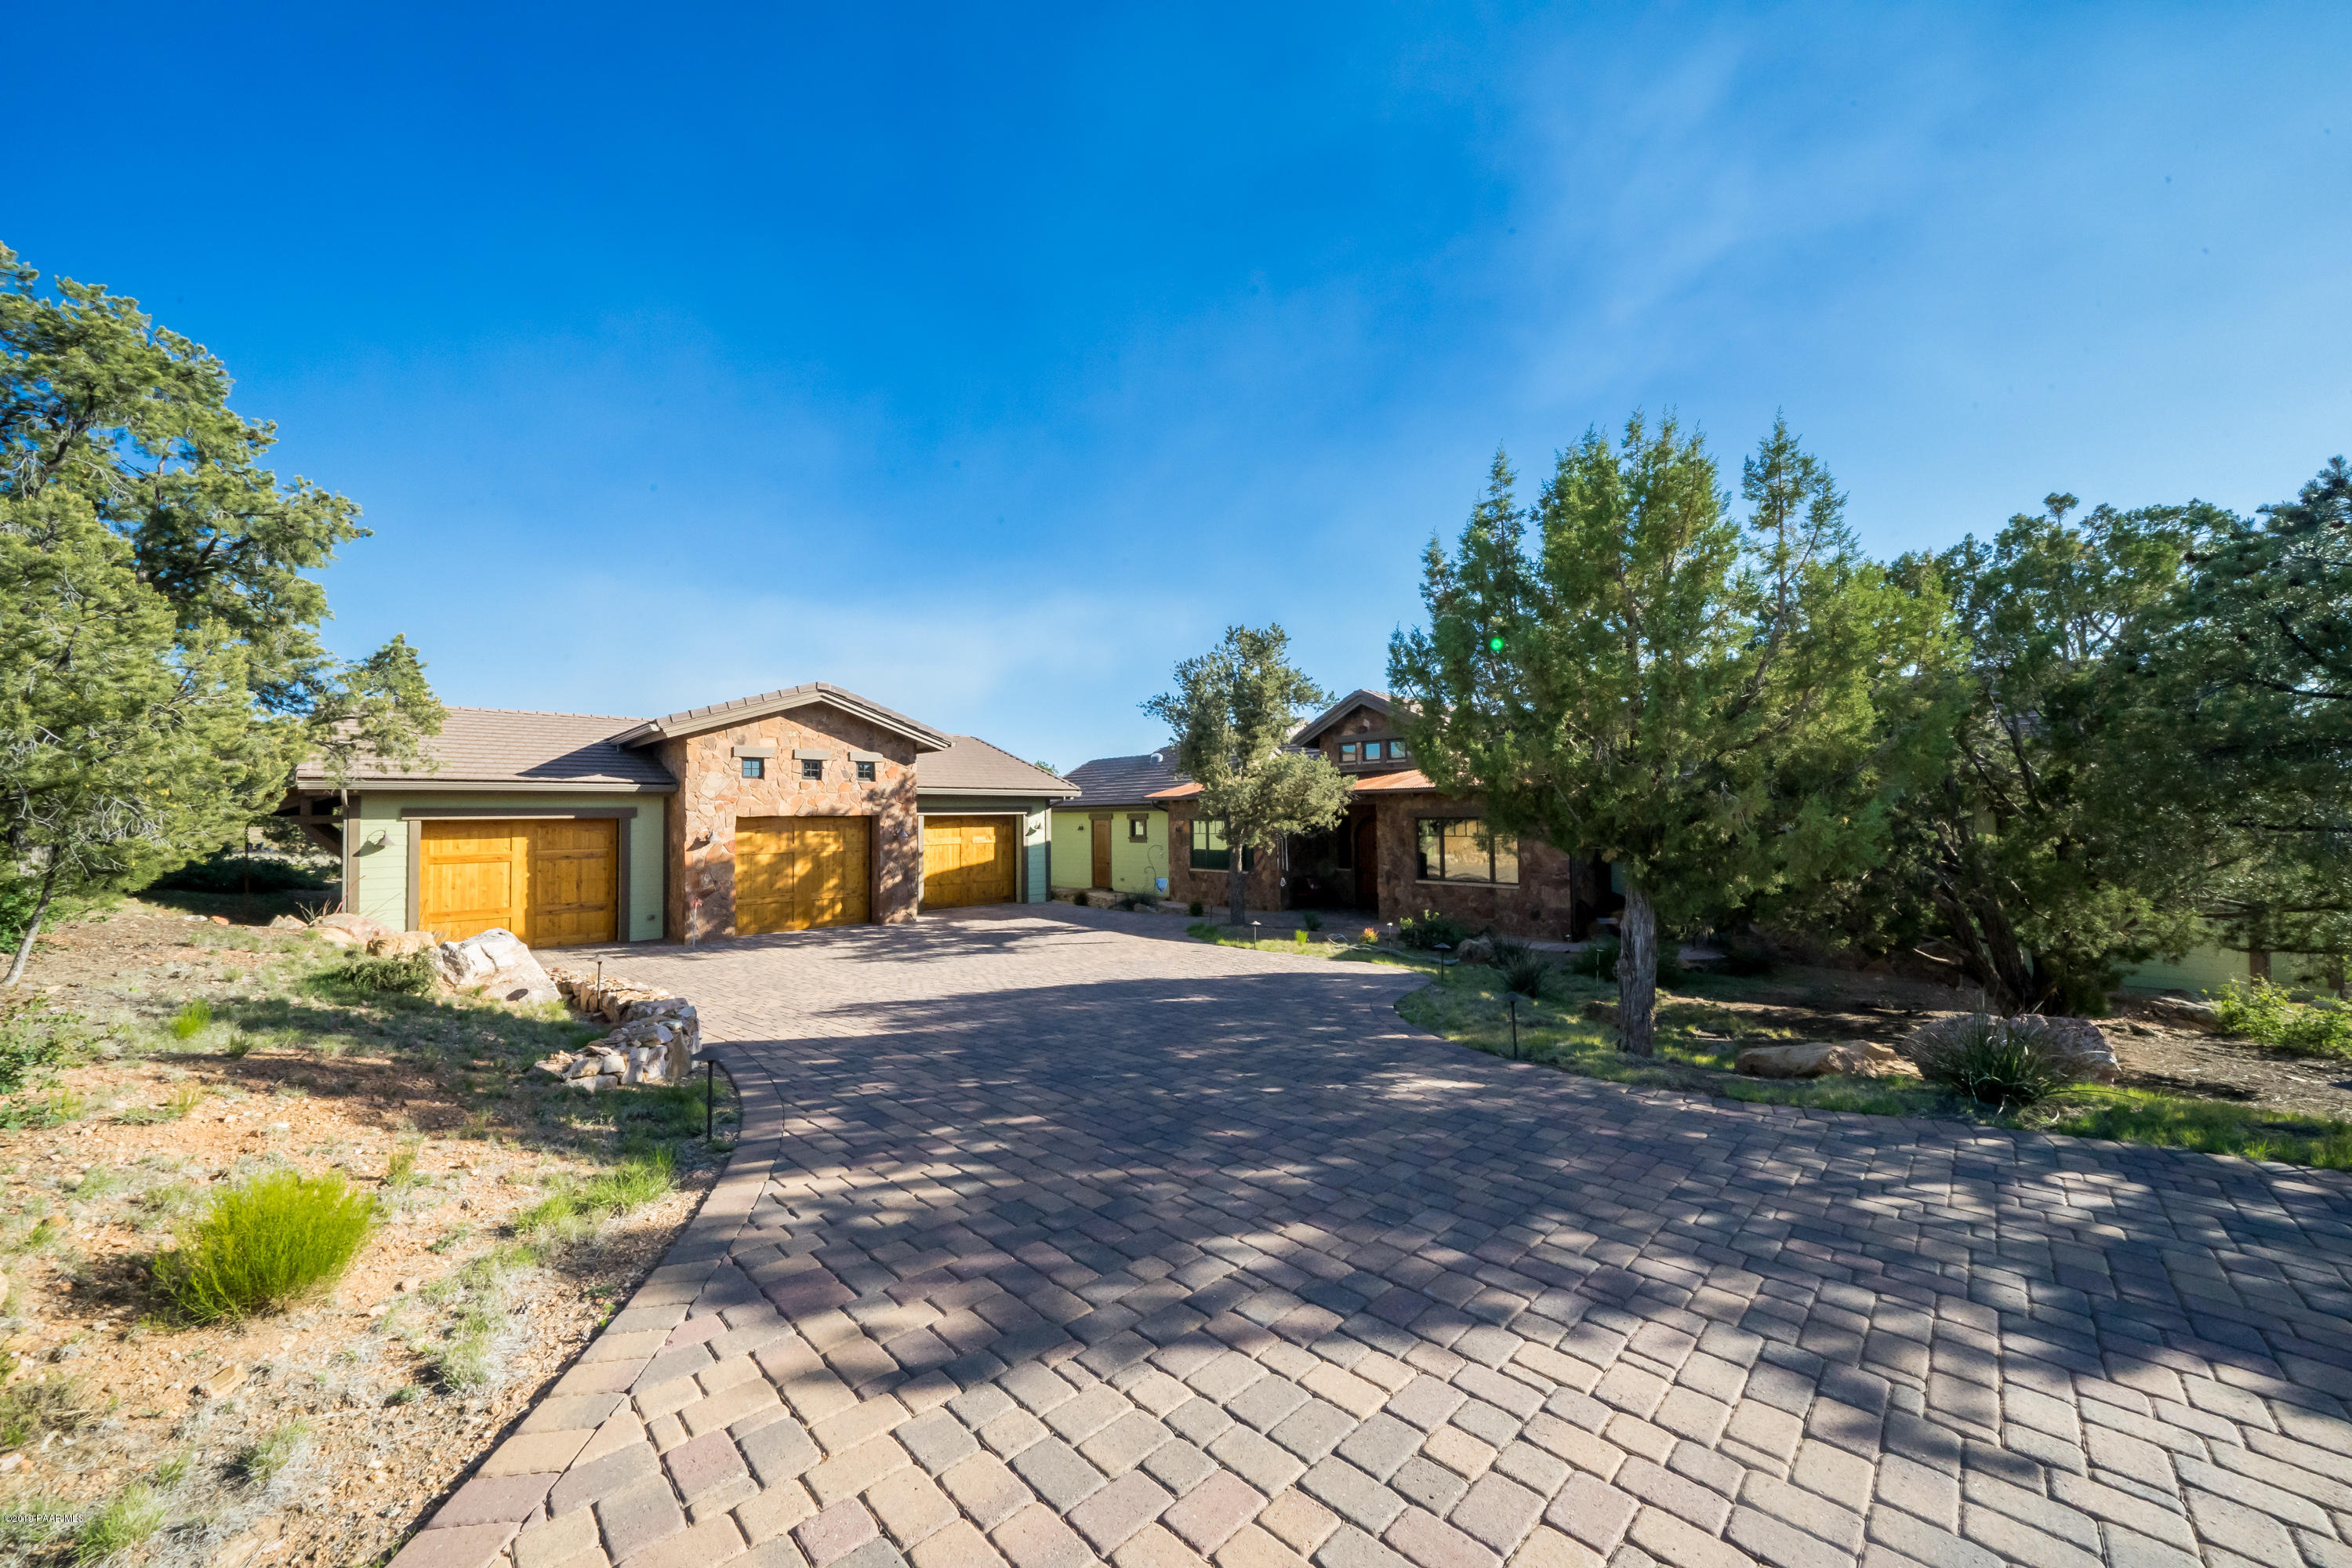 14700 N Agave Meadow Way, Prescott, Arizona